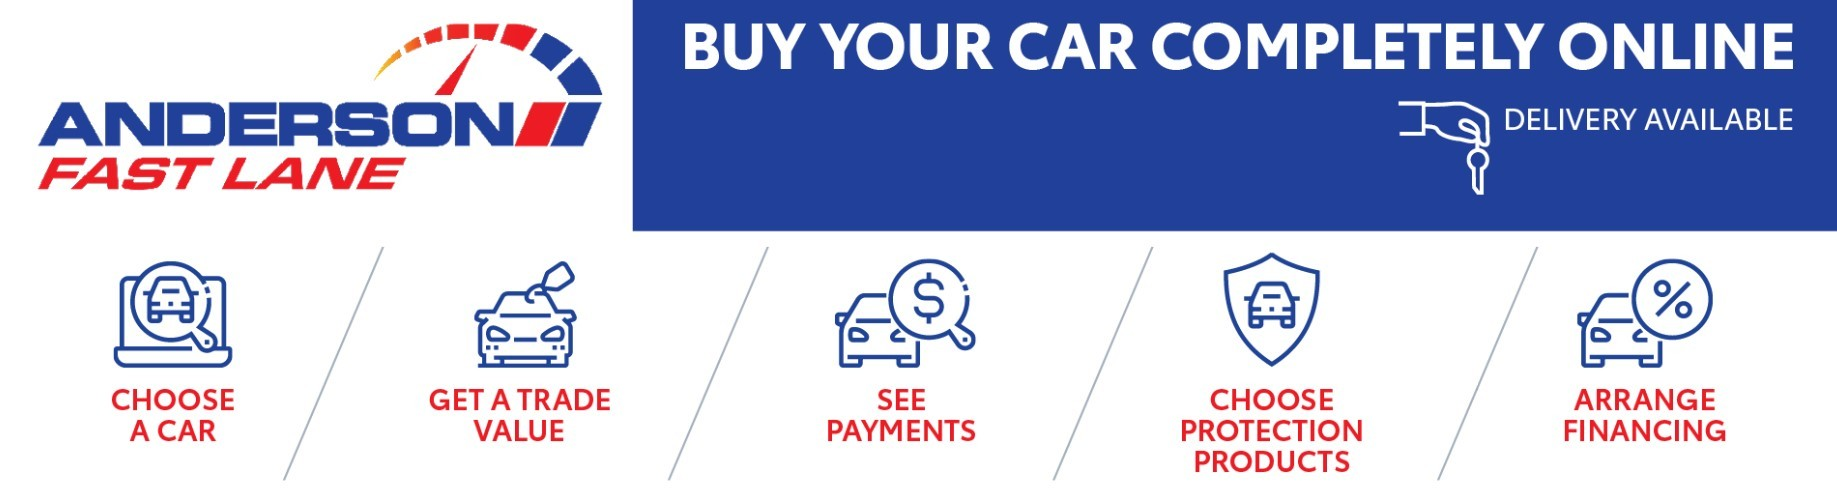 Anderson Fast Lane - Buy Your Car Online